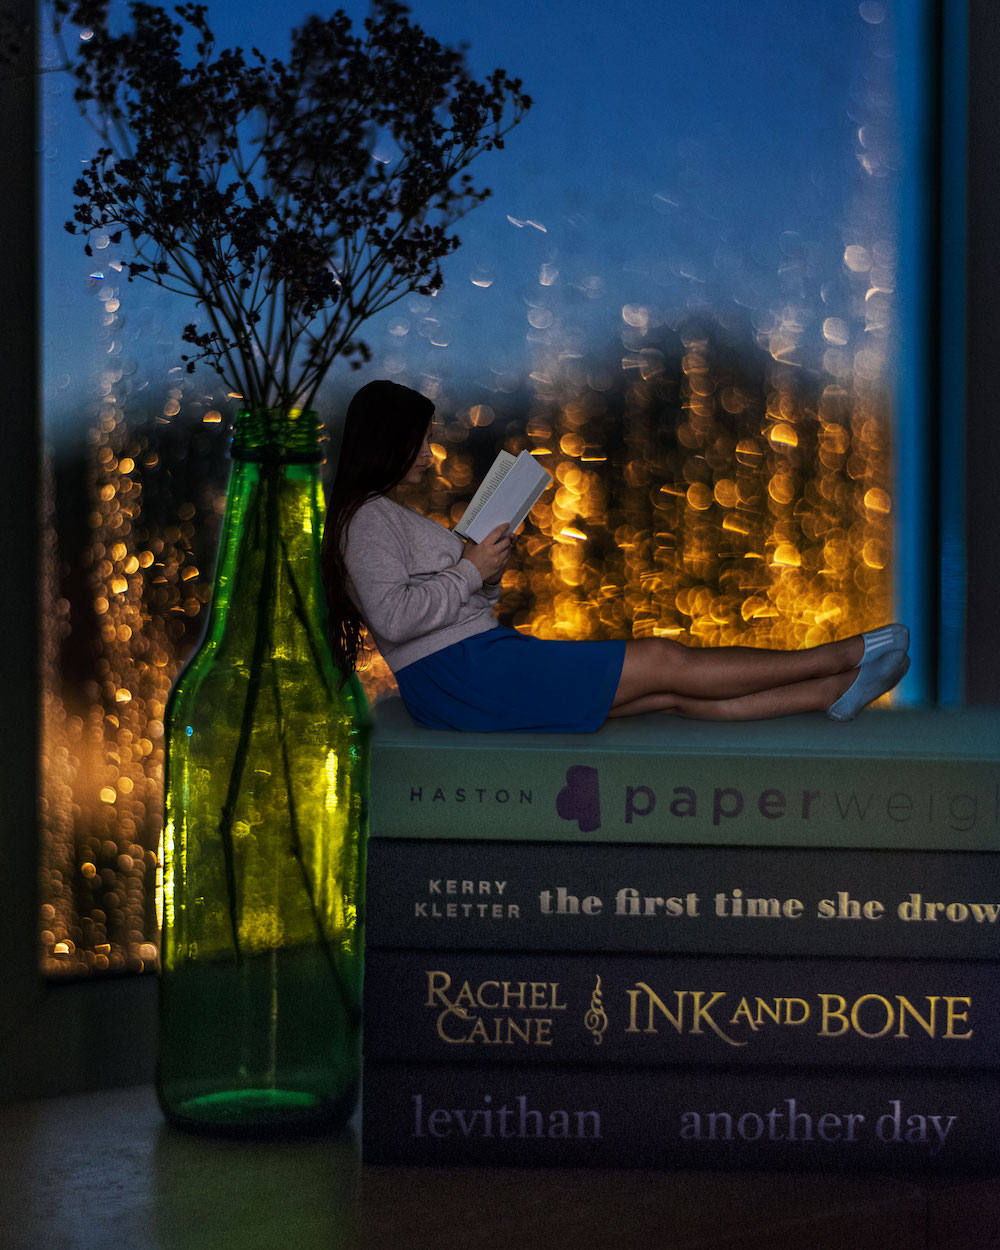 Bookish Scene: April Showers – sitting on a book stack by the window with rain bokeh